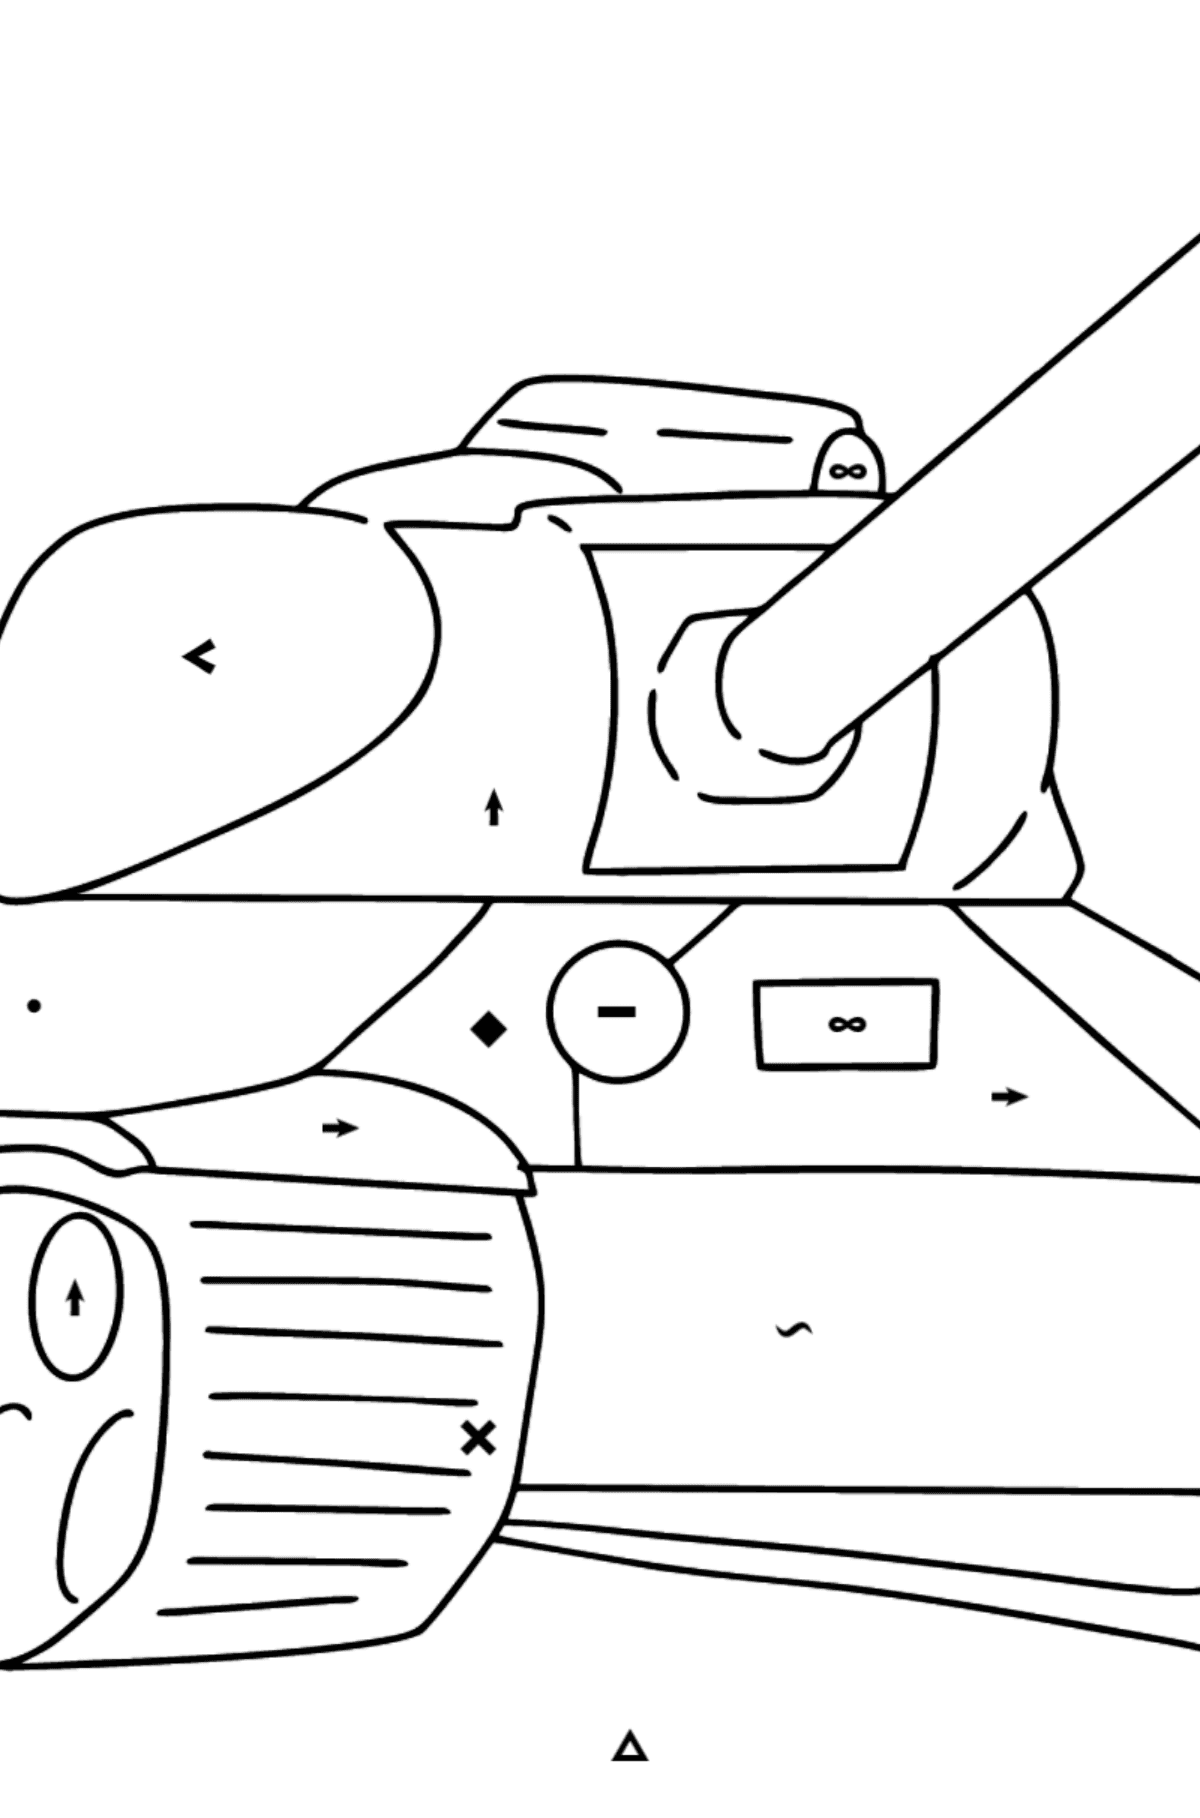 Tank IS 2 coloring page - Coloring by Symbols for Kids